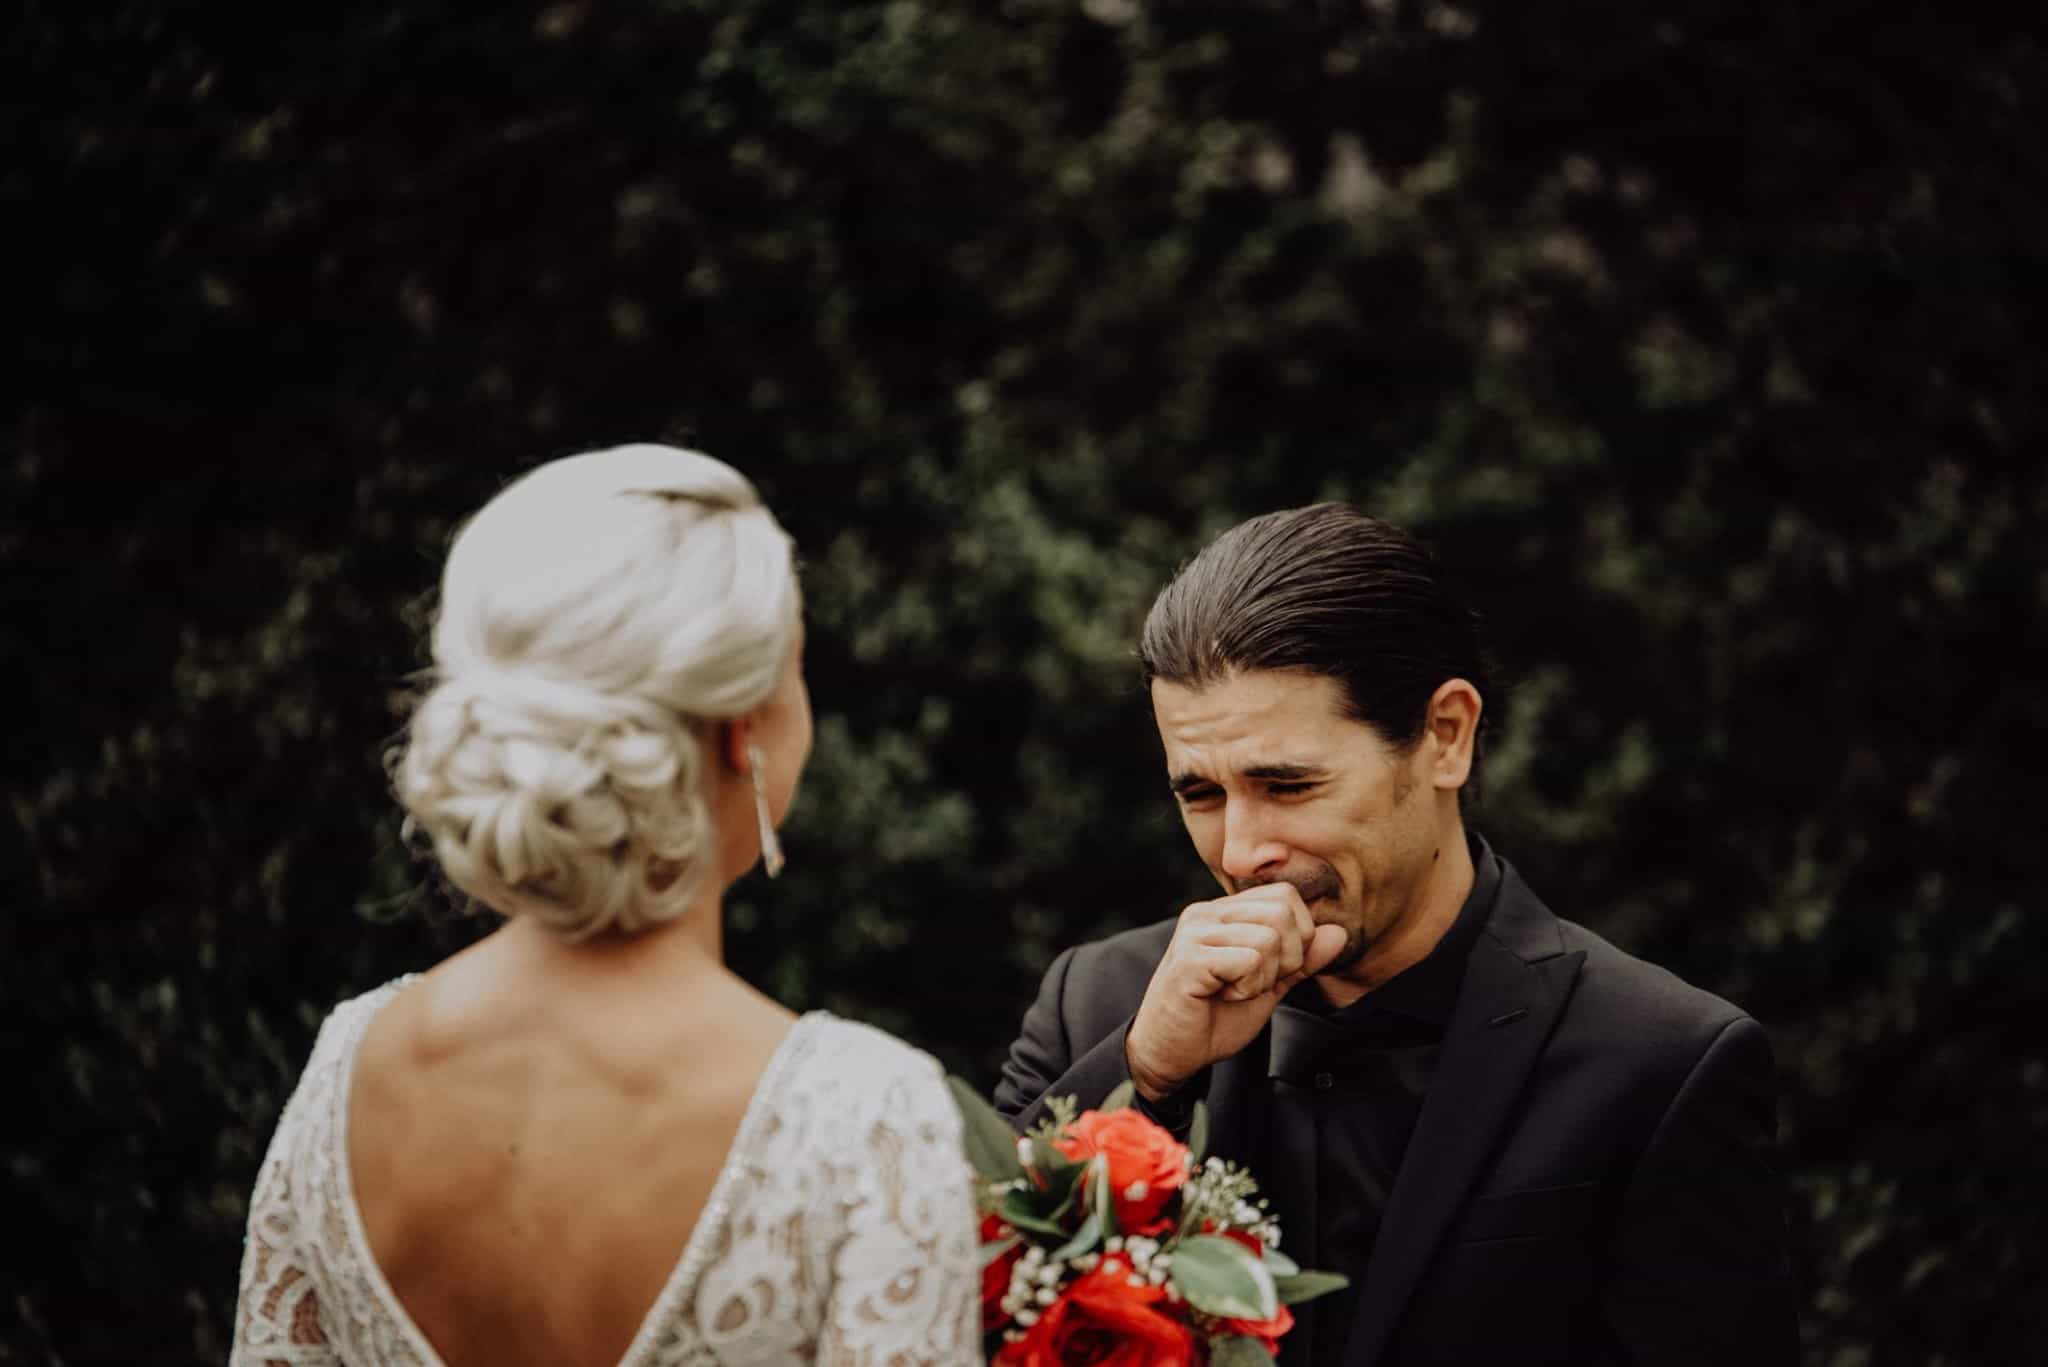 The Most Intense And Emotional First Look Moments At Weddings